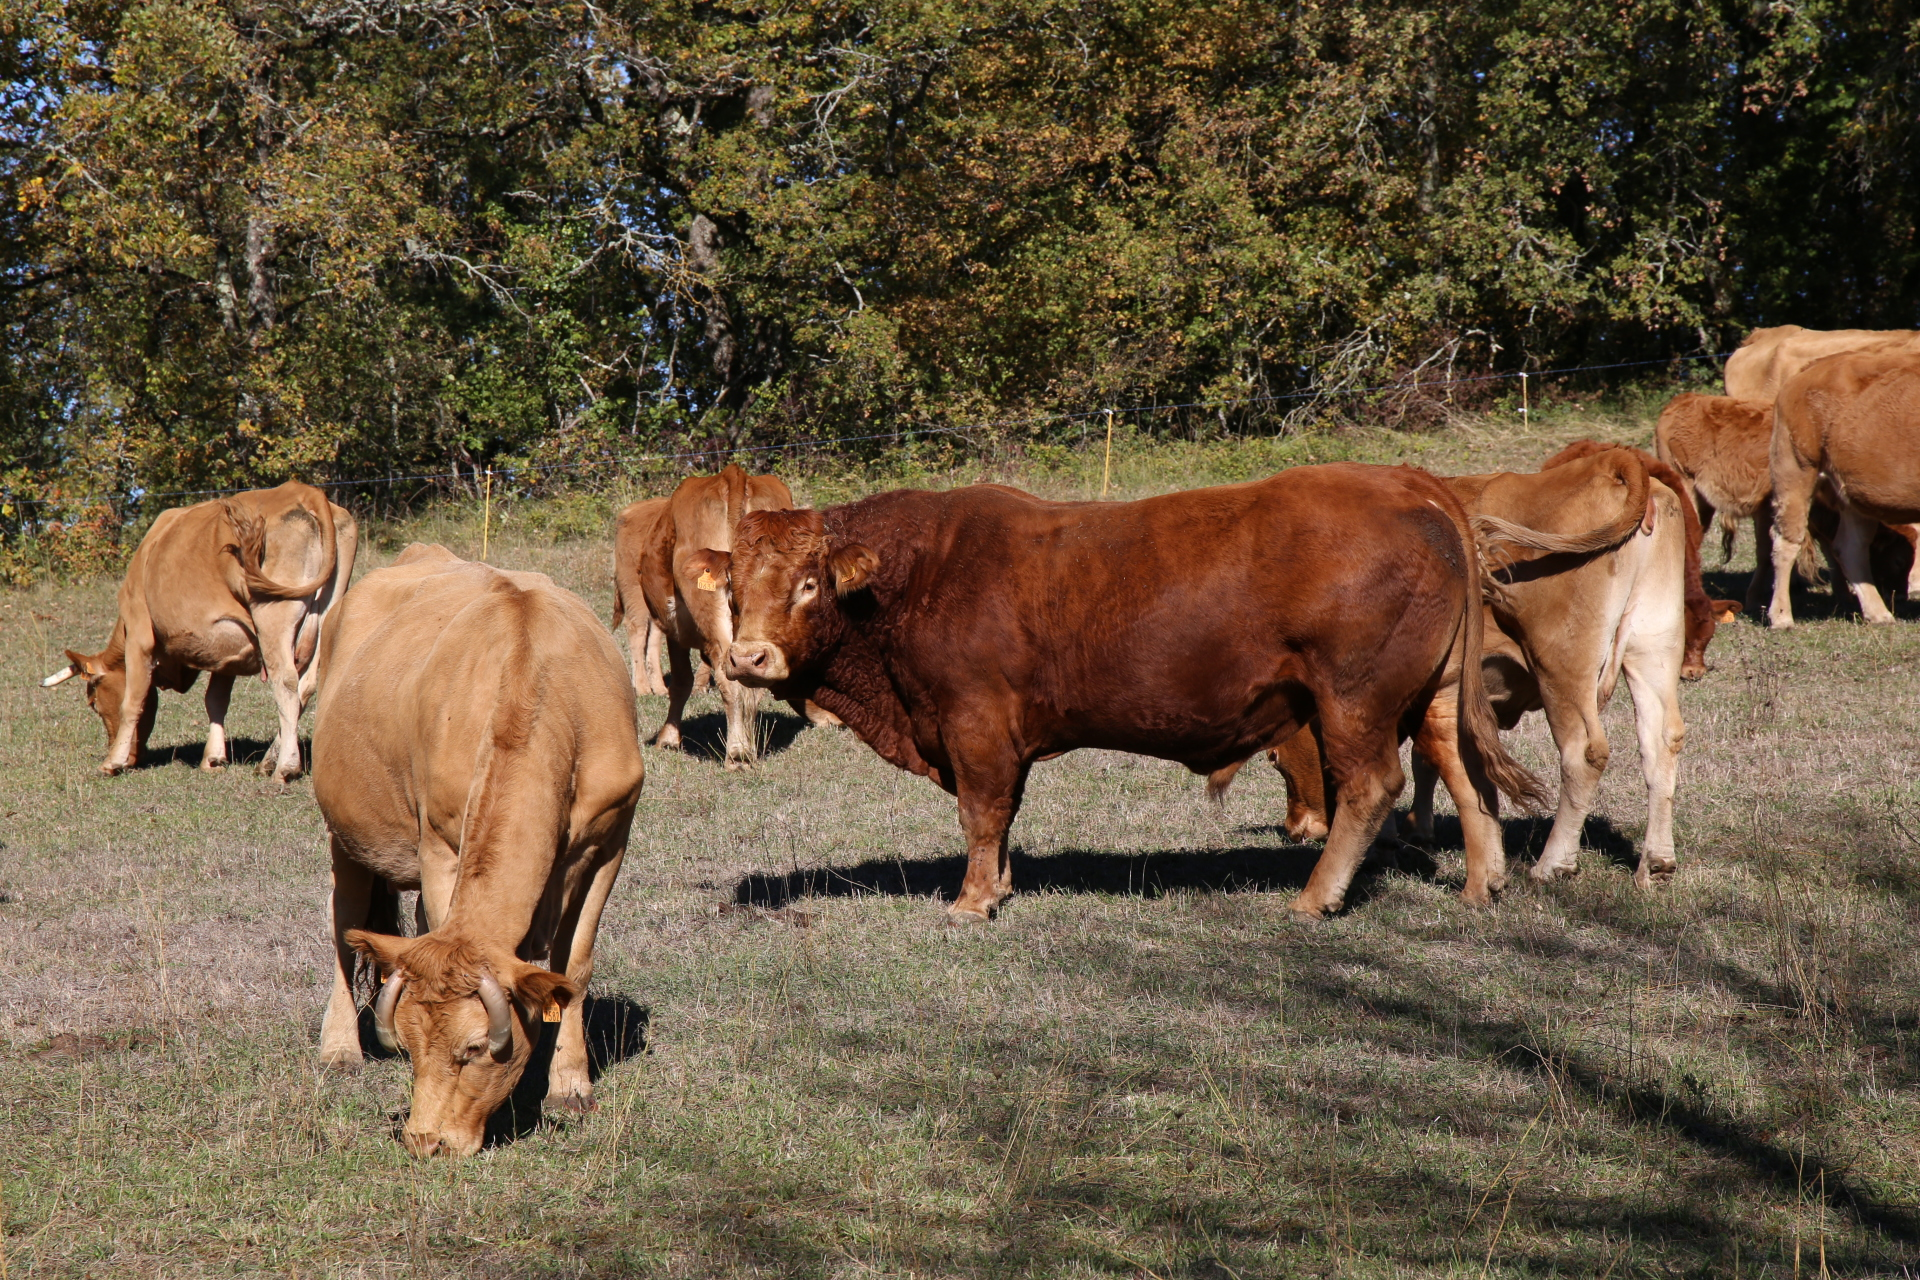 Cows grazing in the field behind our house in October